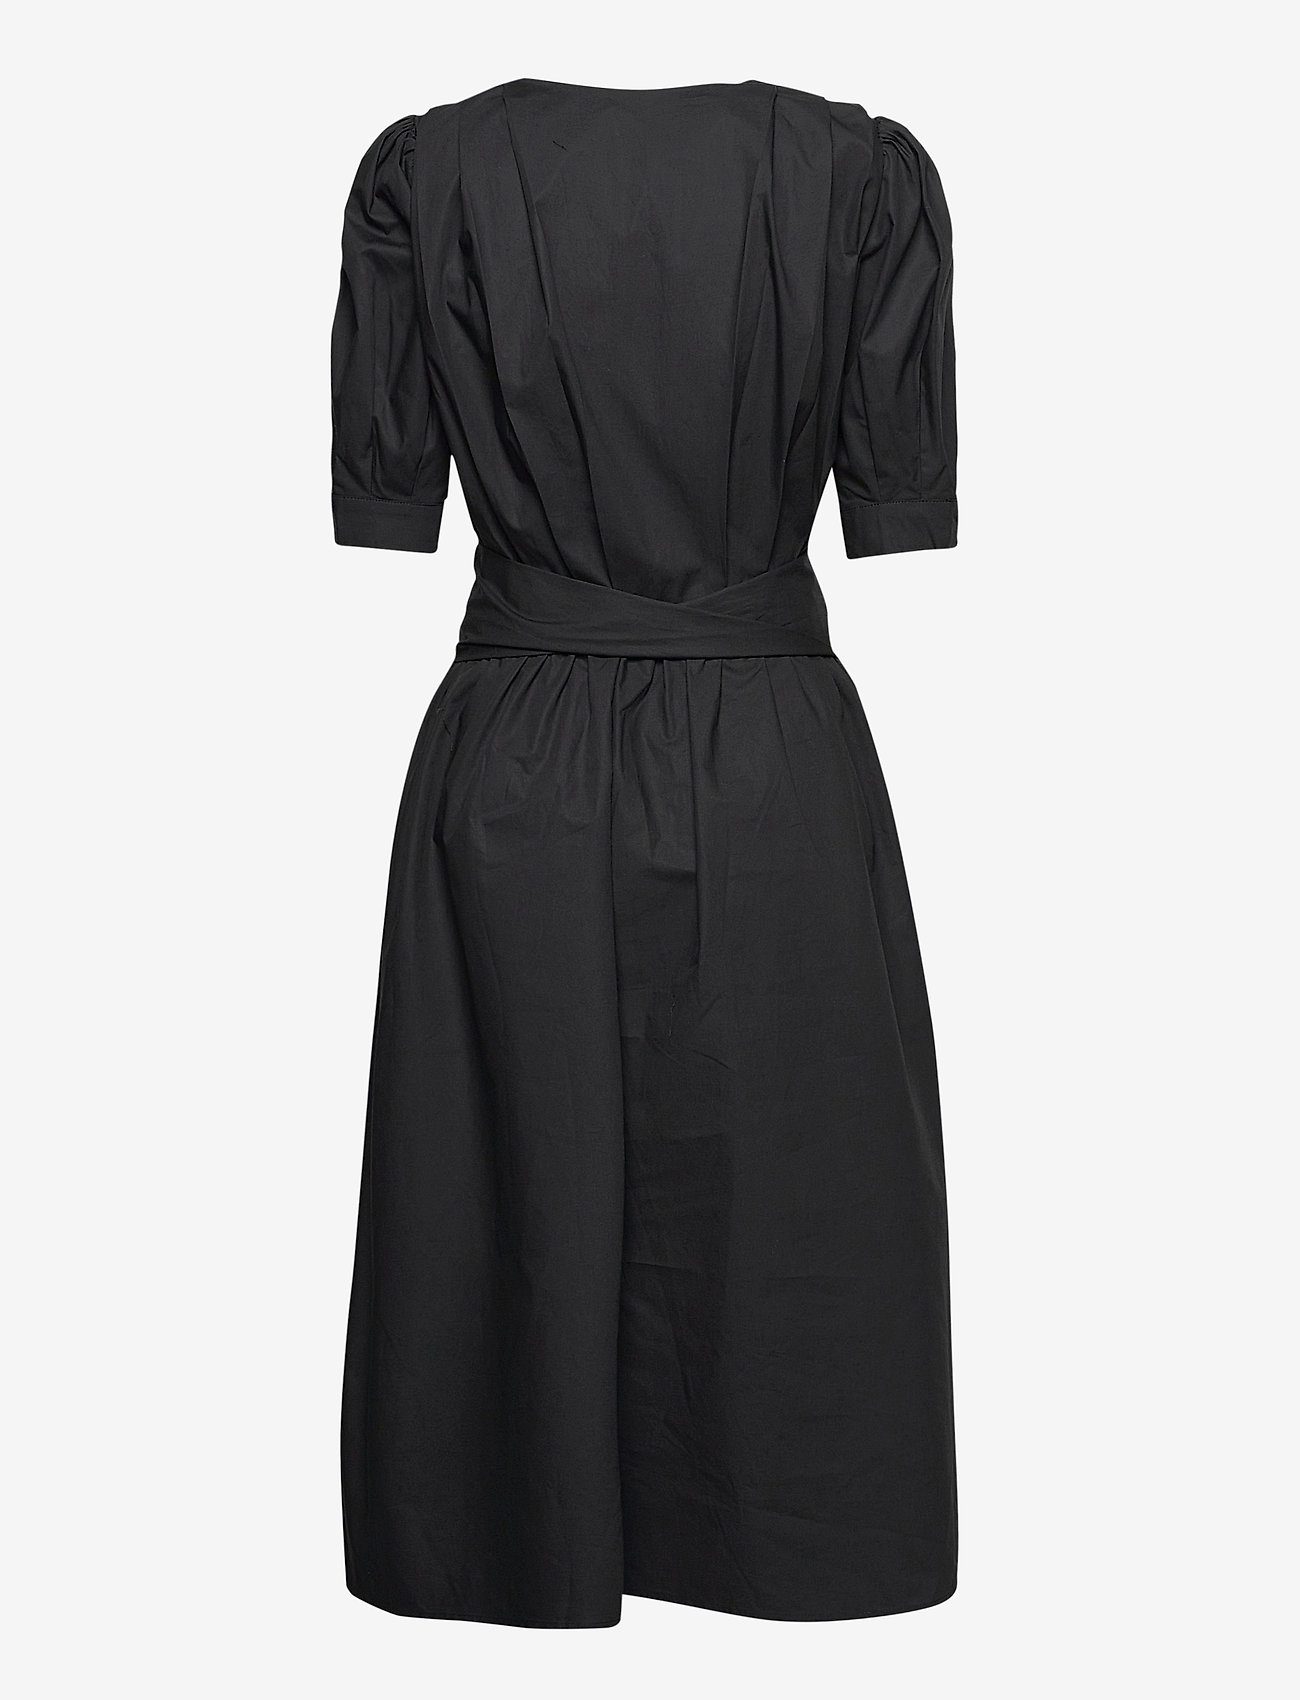 2NDDAY - 2ND Smith Thinktwice - midi dresses - black - 1